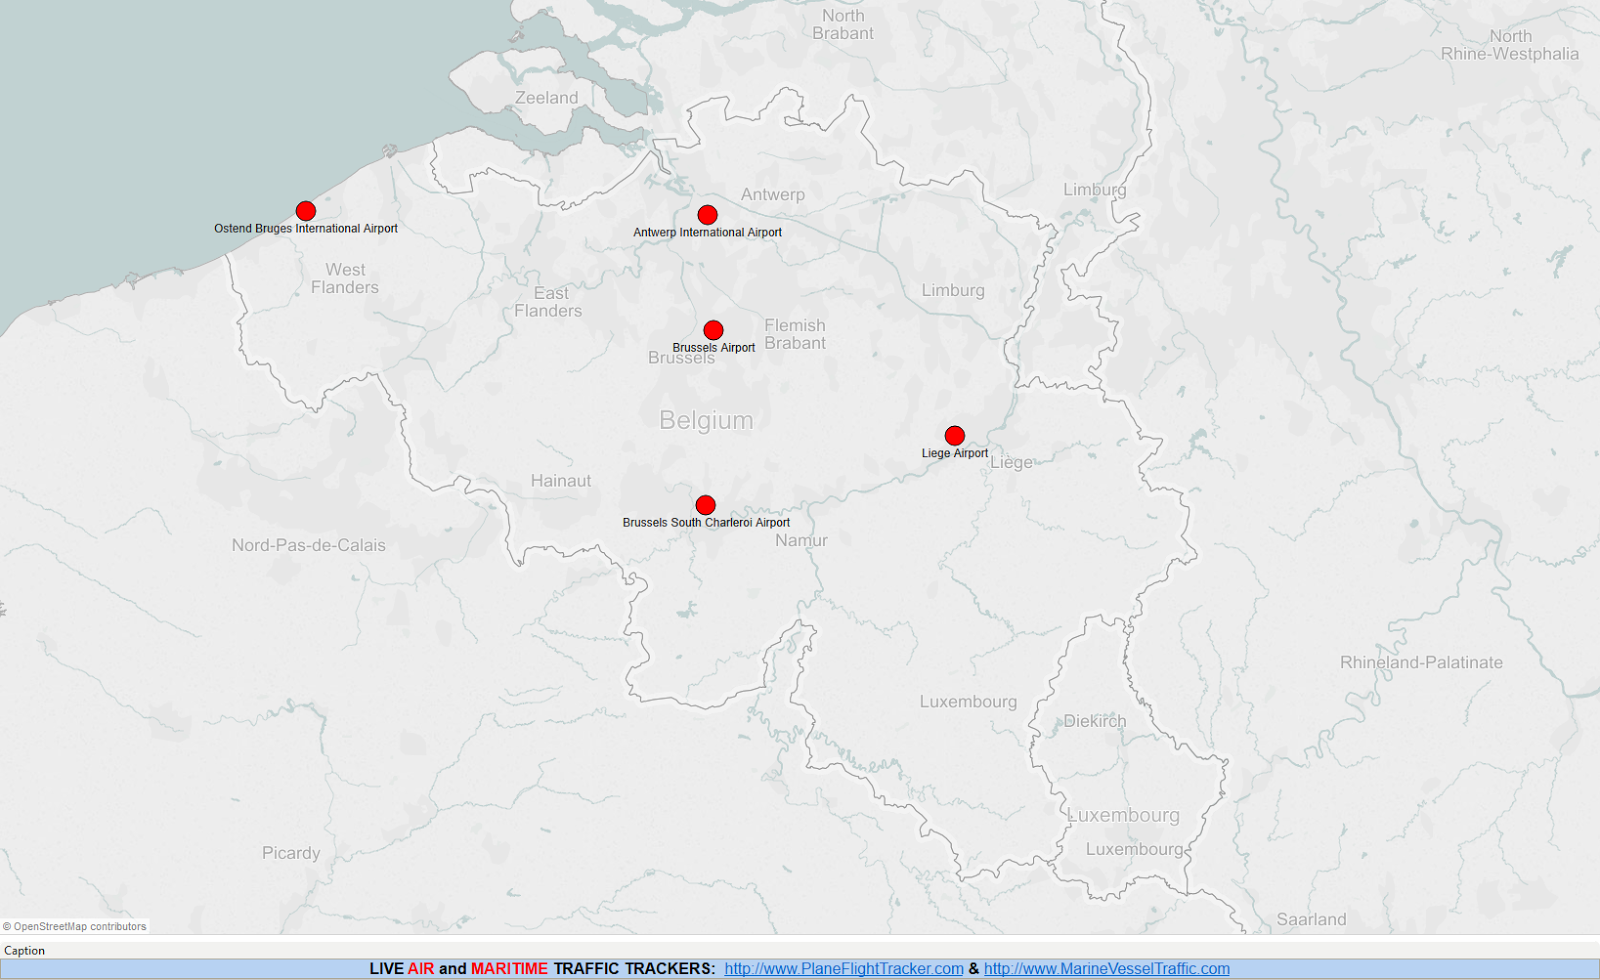 BELGIUM AIRPORTS MAP | Plane Flight Tracker on map of myanmar airports, map of north korea airports, map of aruba airports, map of usa west coast airports, map of new york state airports, map of the united states airports, map of kazakhstan airports, map of south america airports, map of swaziland airports, map of sri lanka airports, map of indonesia airports, map of colombia airports, map of zimbabwe airports, map of north america airports, map of kenya airports, map of oman airports, map of haiti airports, map of iran airports, map of lithuania airports, map of taiwan airports,